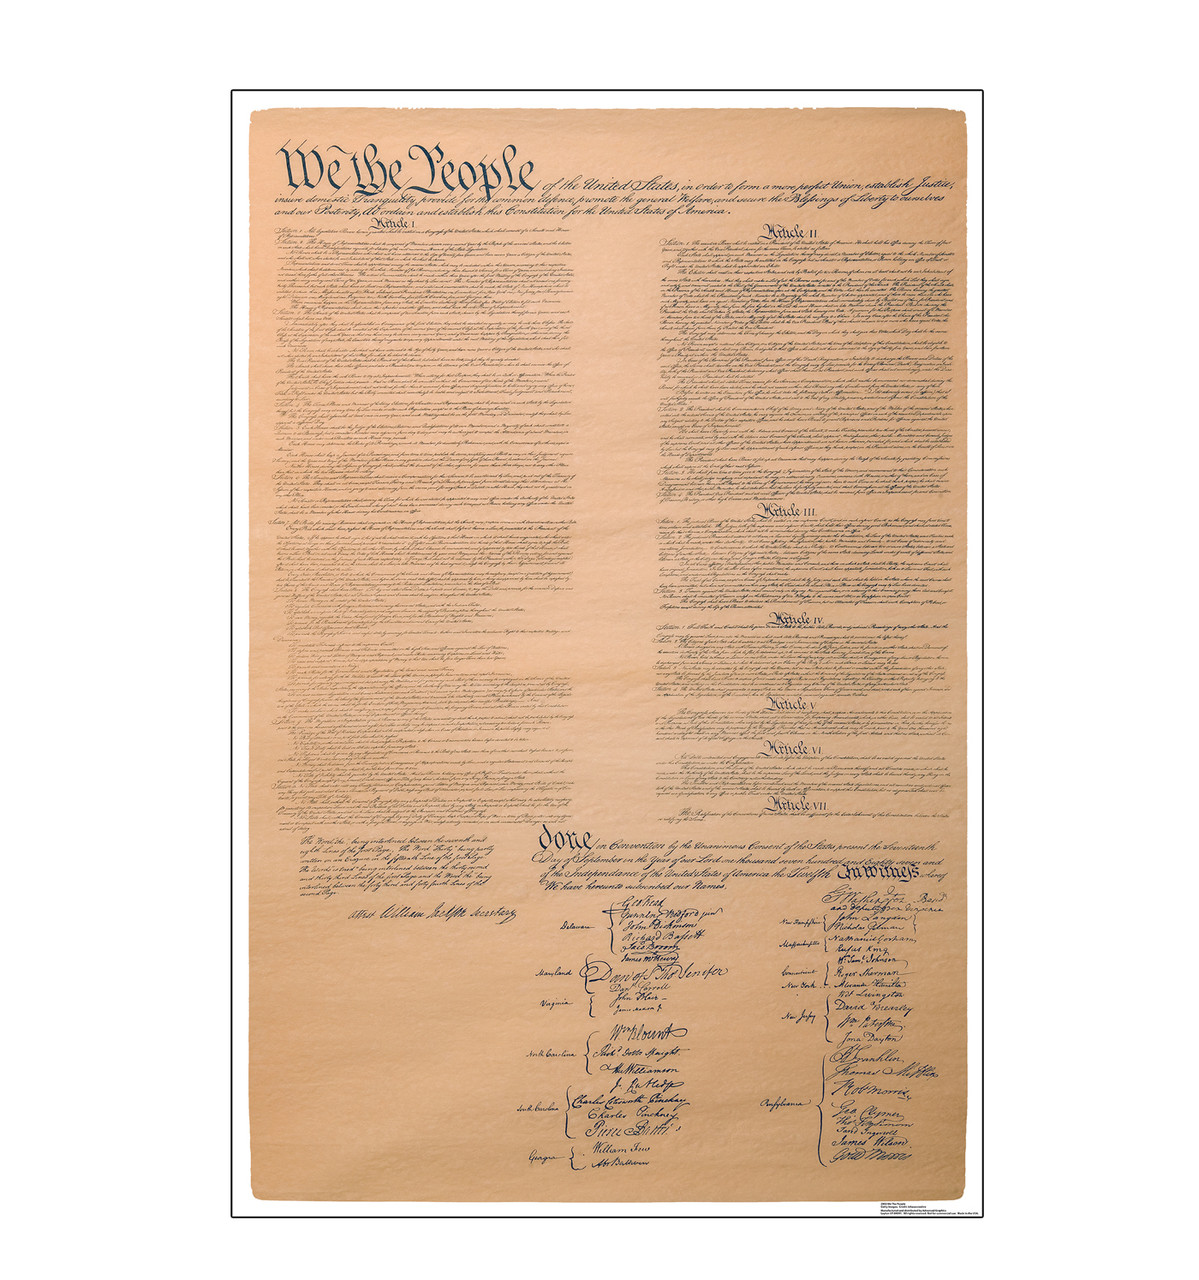 Life-size cardboard standee of We The People, US Constitutions.